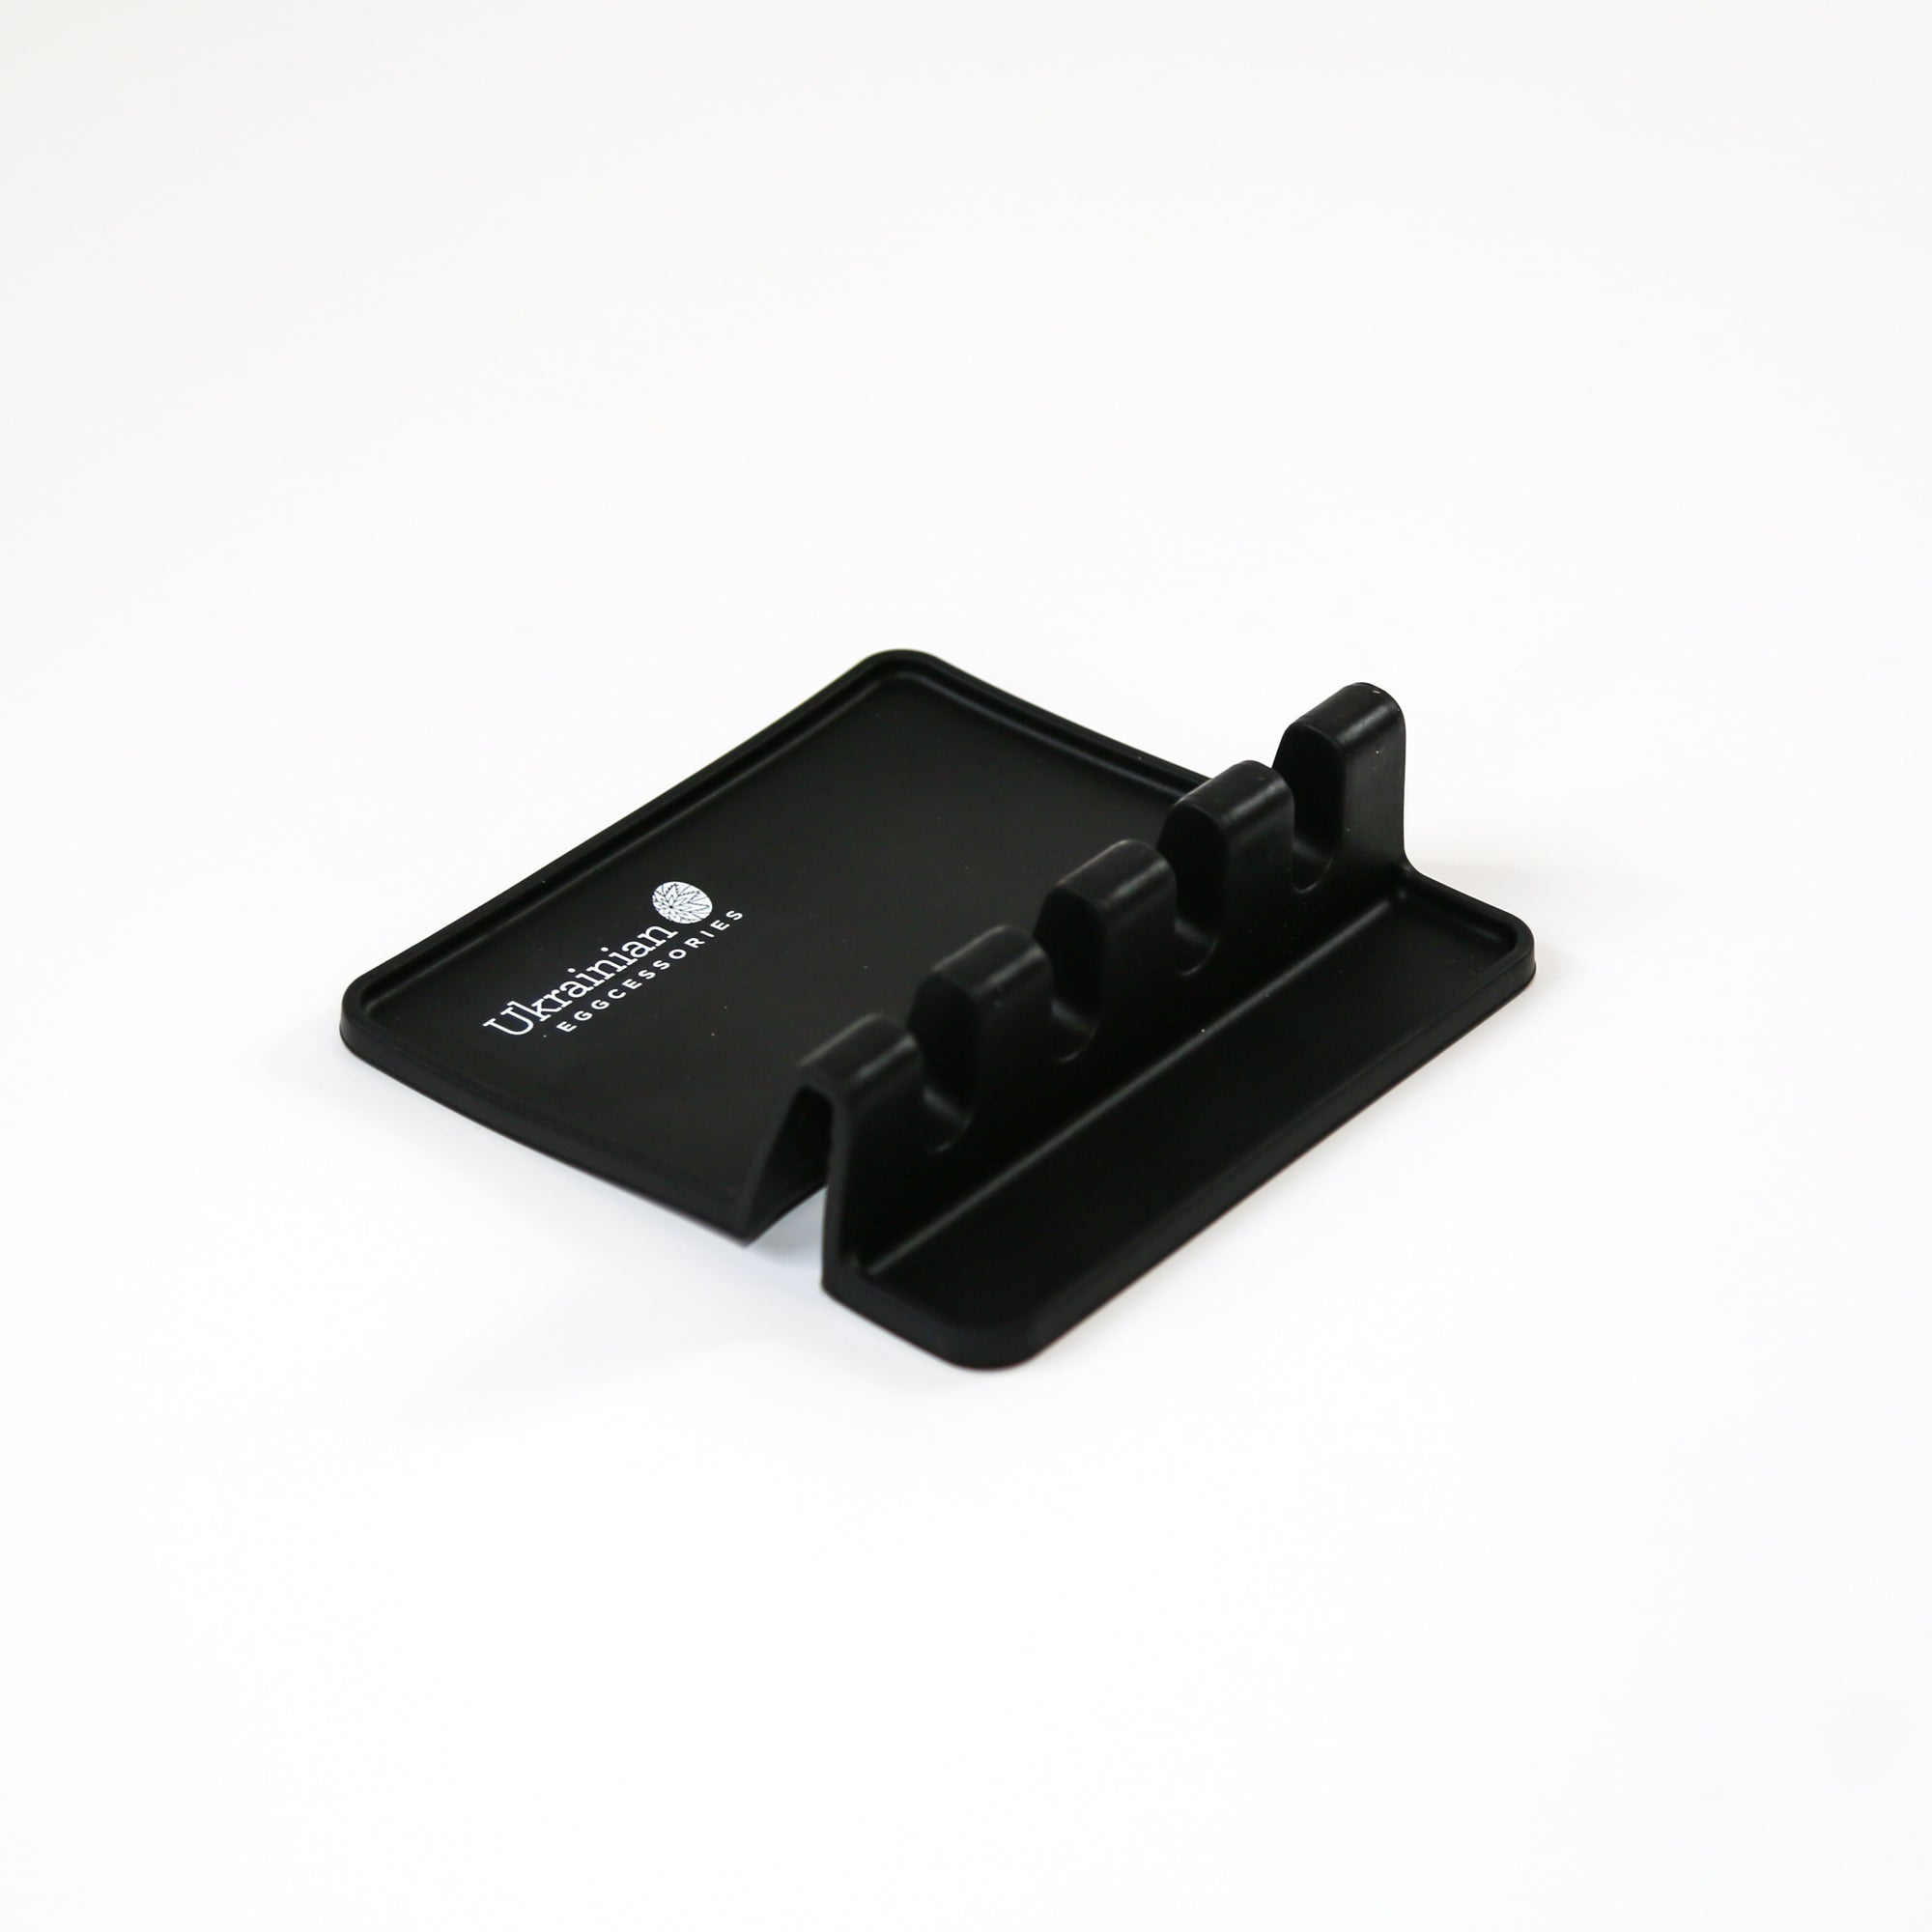 Kistka Holder - Black Silicone - Holds 4 Electric Kistka